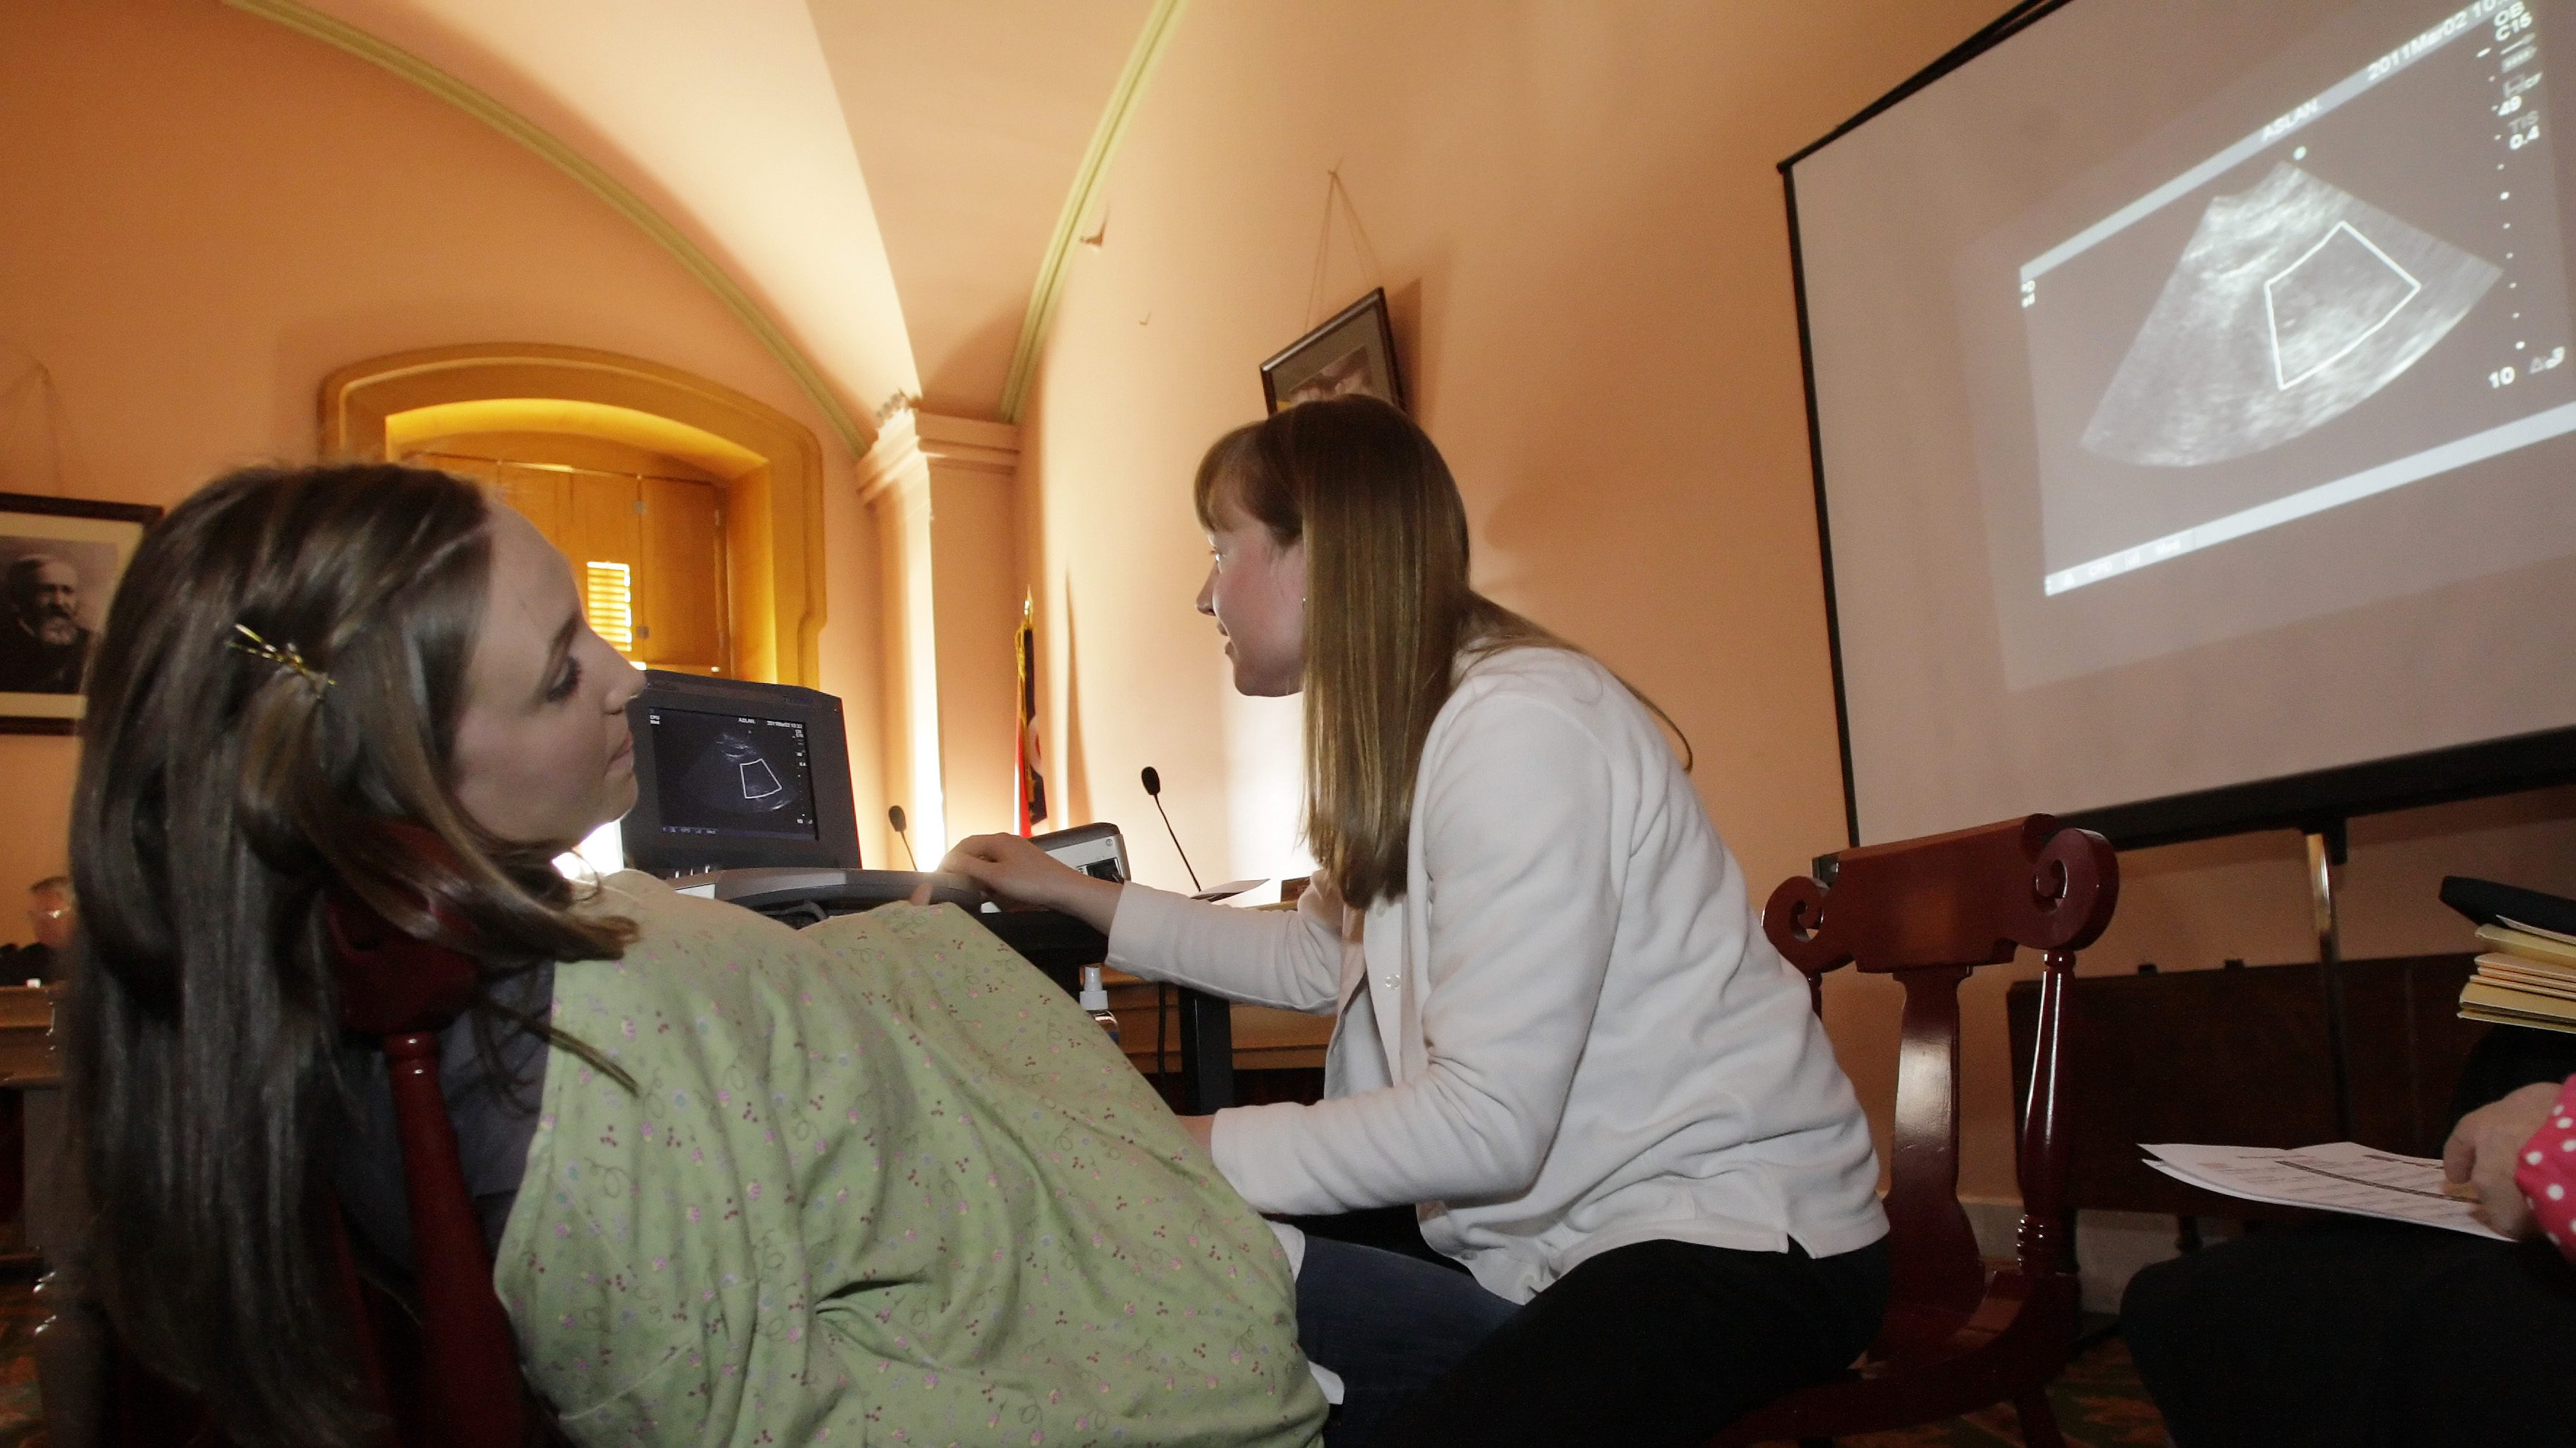 Registered nurse Julie Aber, right, of the Ashland Care Center, administers an ultrasound to Erin Glockner, of Pataskala, as testimony to the house committee on House Bill 125 continues Wednesday, March 2, 2011, in Columbus, Ohio. House Bill 125, also known as the heartbeat bill, prohibits abortions after the first detectable heartbeat. (AP Photo/Jay LaPrete)